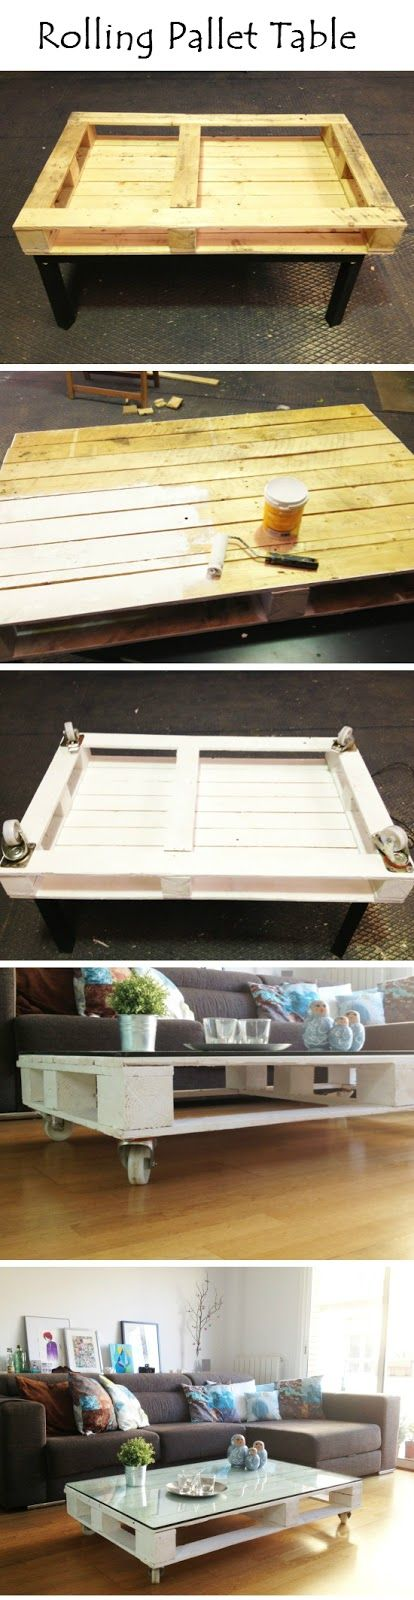 Rolling Pallet Table | Crafts and DIY Community